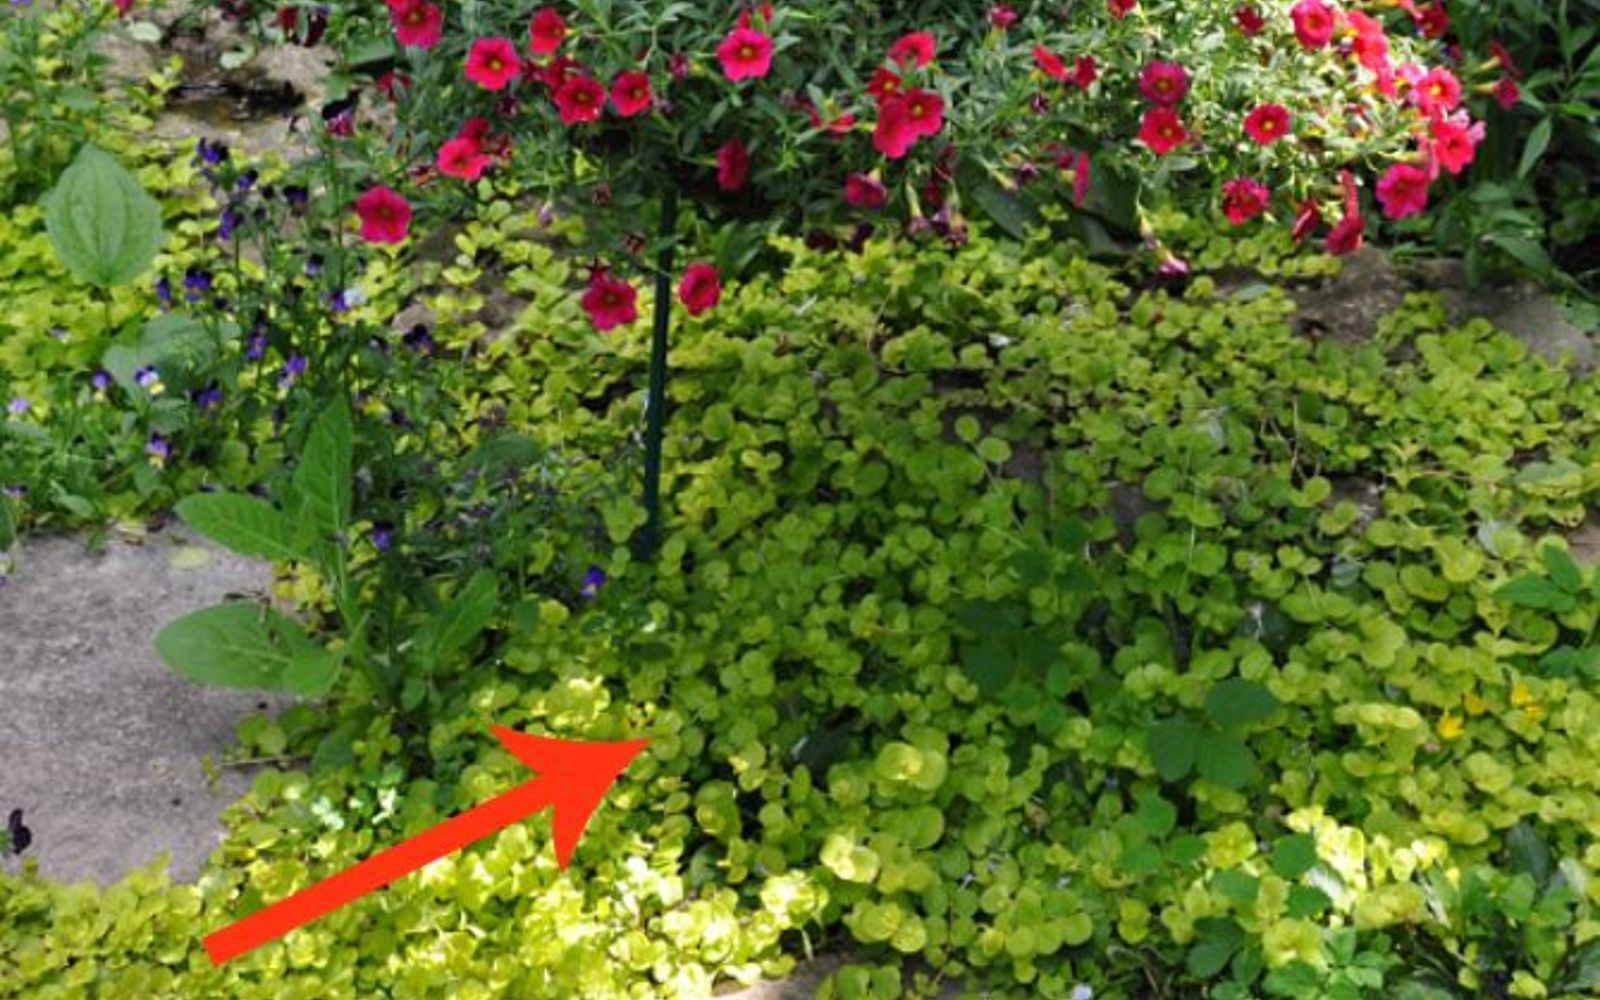 s 11 beatiful plants that are secretly killing your garden, gardening, Creeping Jenny